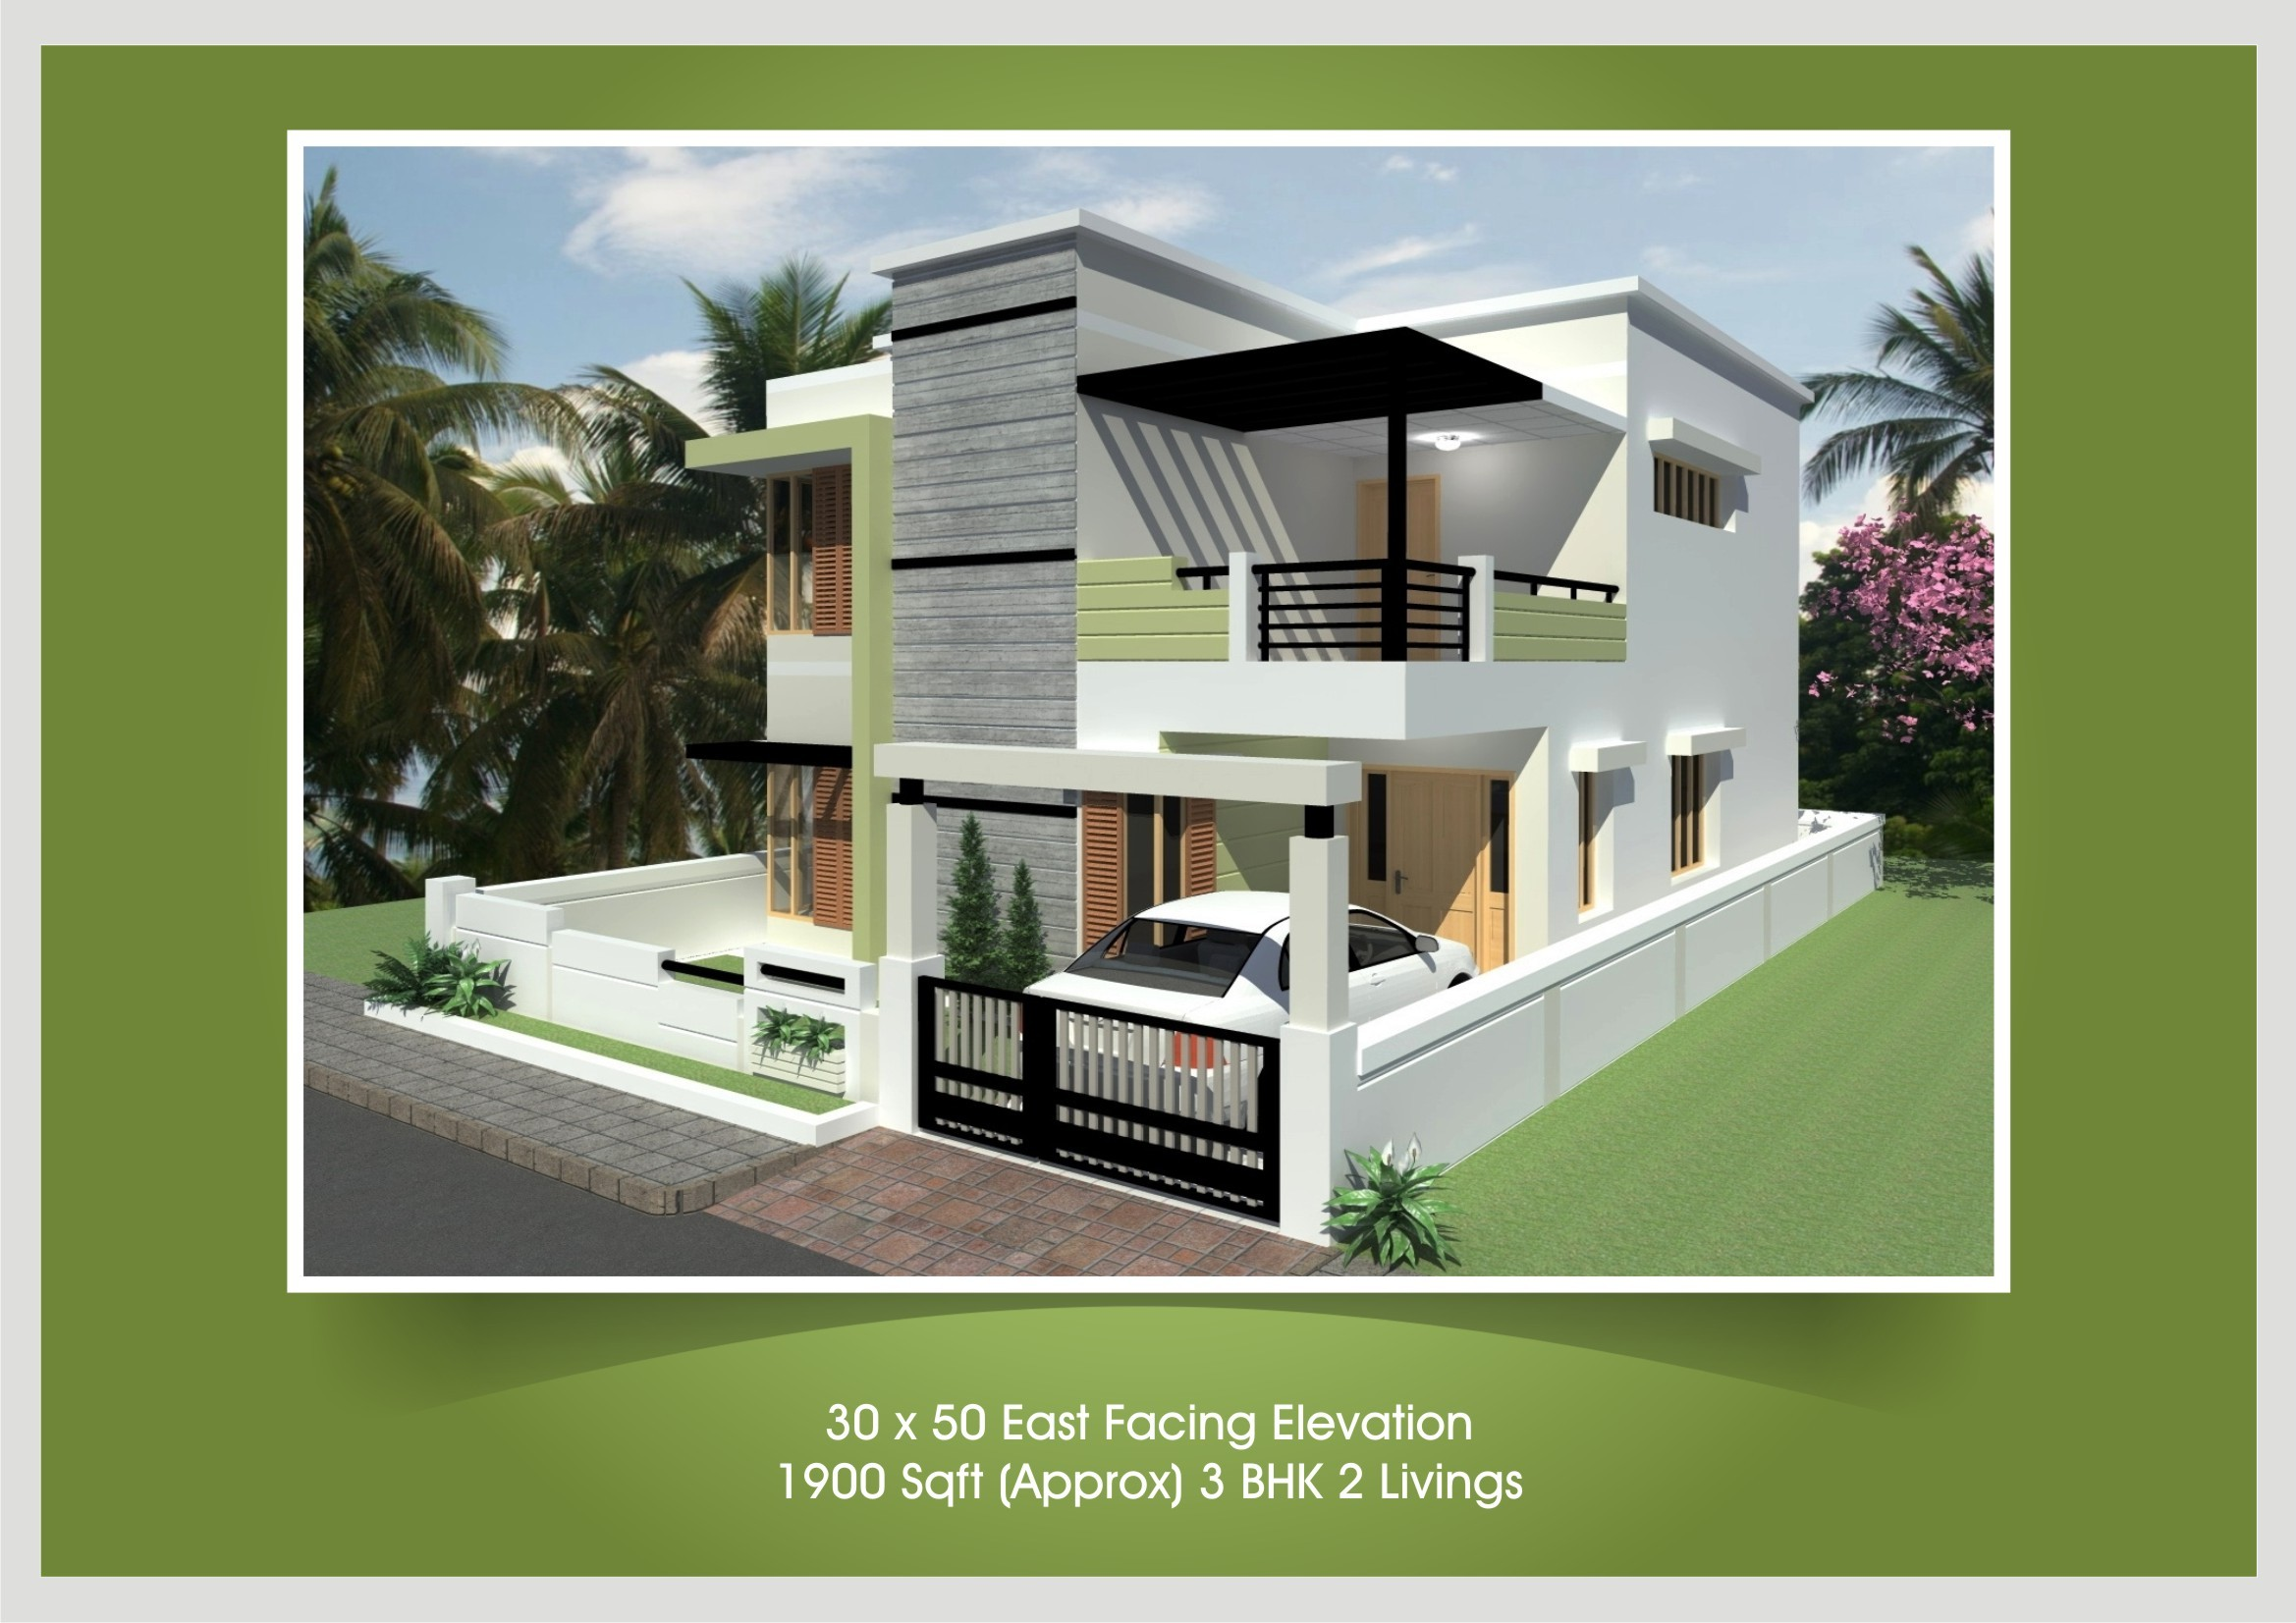 Up ing Residential Villas BEML